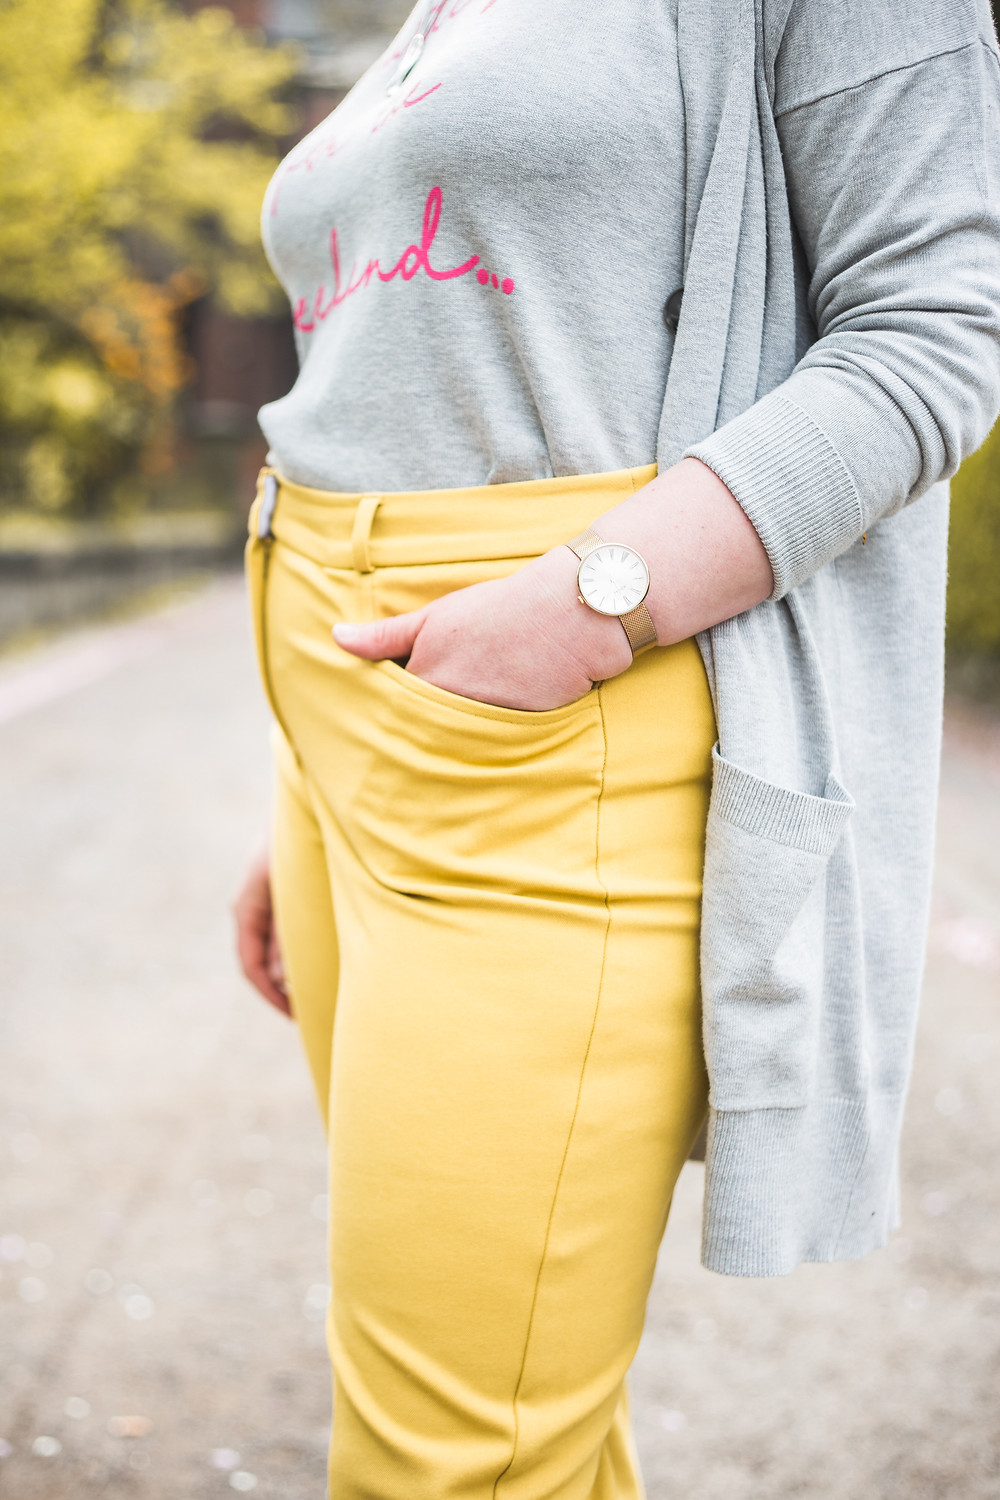 Sarah is wearing yellow trousers, grey jumper with pink writing, grey cardigan and you can see the watch on her wrist and her hand is in her pocket. It is a side shot and you can't see her face.